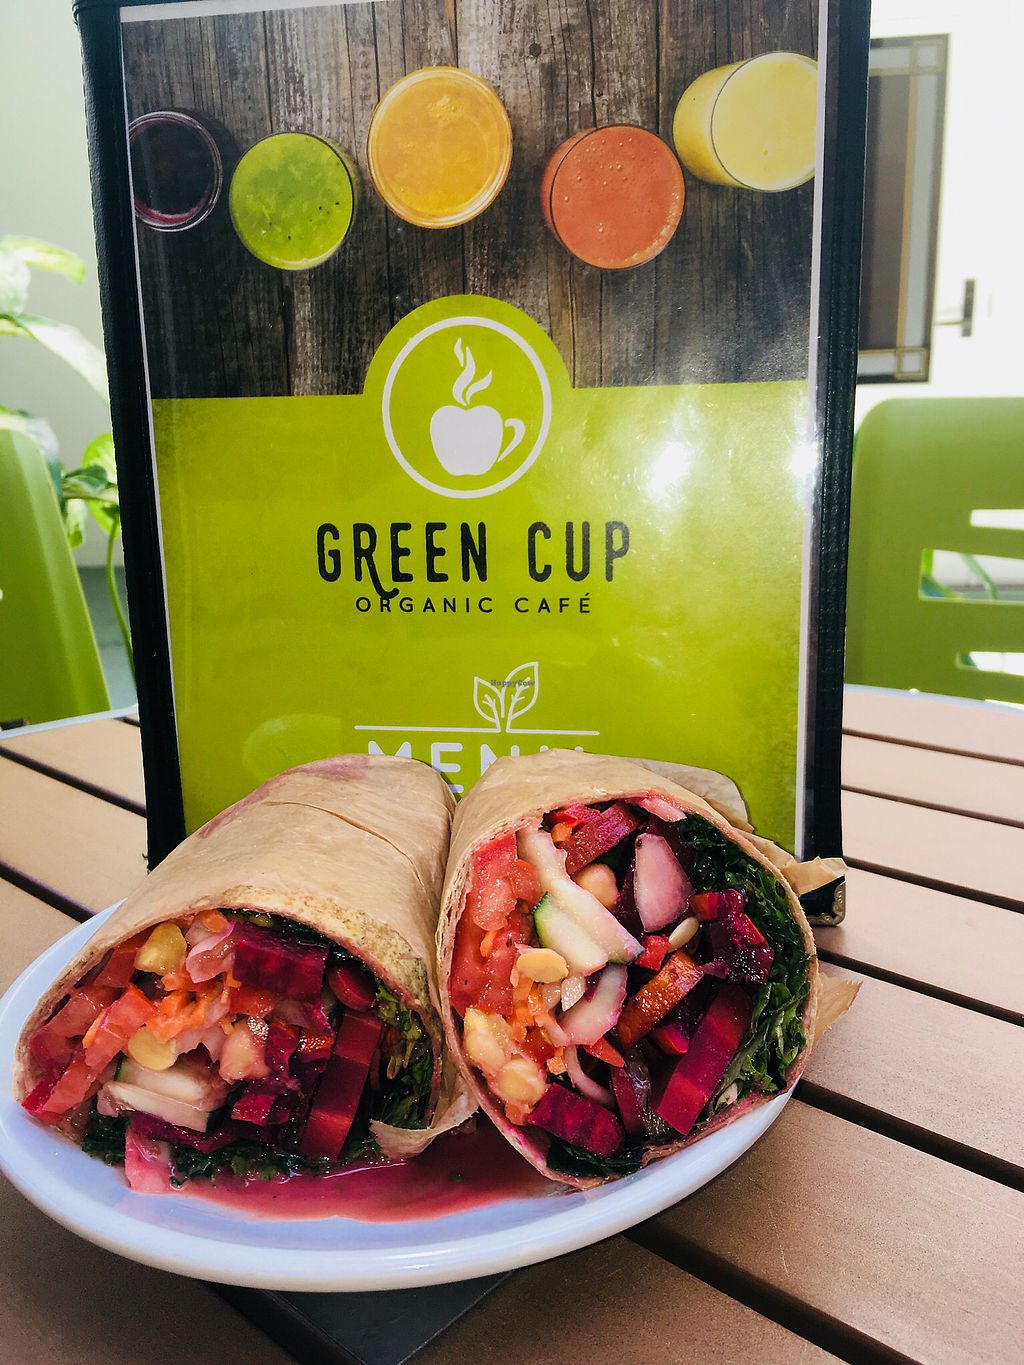 """Photo of Green Cup Cafe  by <a href=""""/members/profile/EBercaw"""">EBercaw</a> <br/>Delicious raw vegan wrap <br/> April 15, 2018  - <a href='/contact/abuse/image/52621/386360'>Report</a>"""